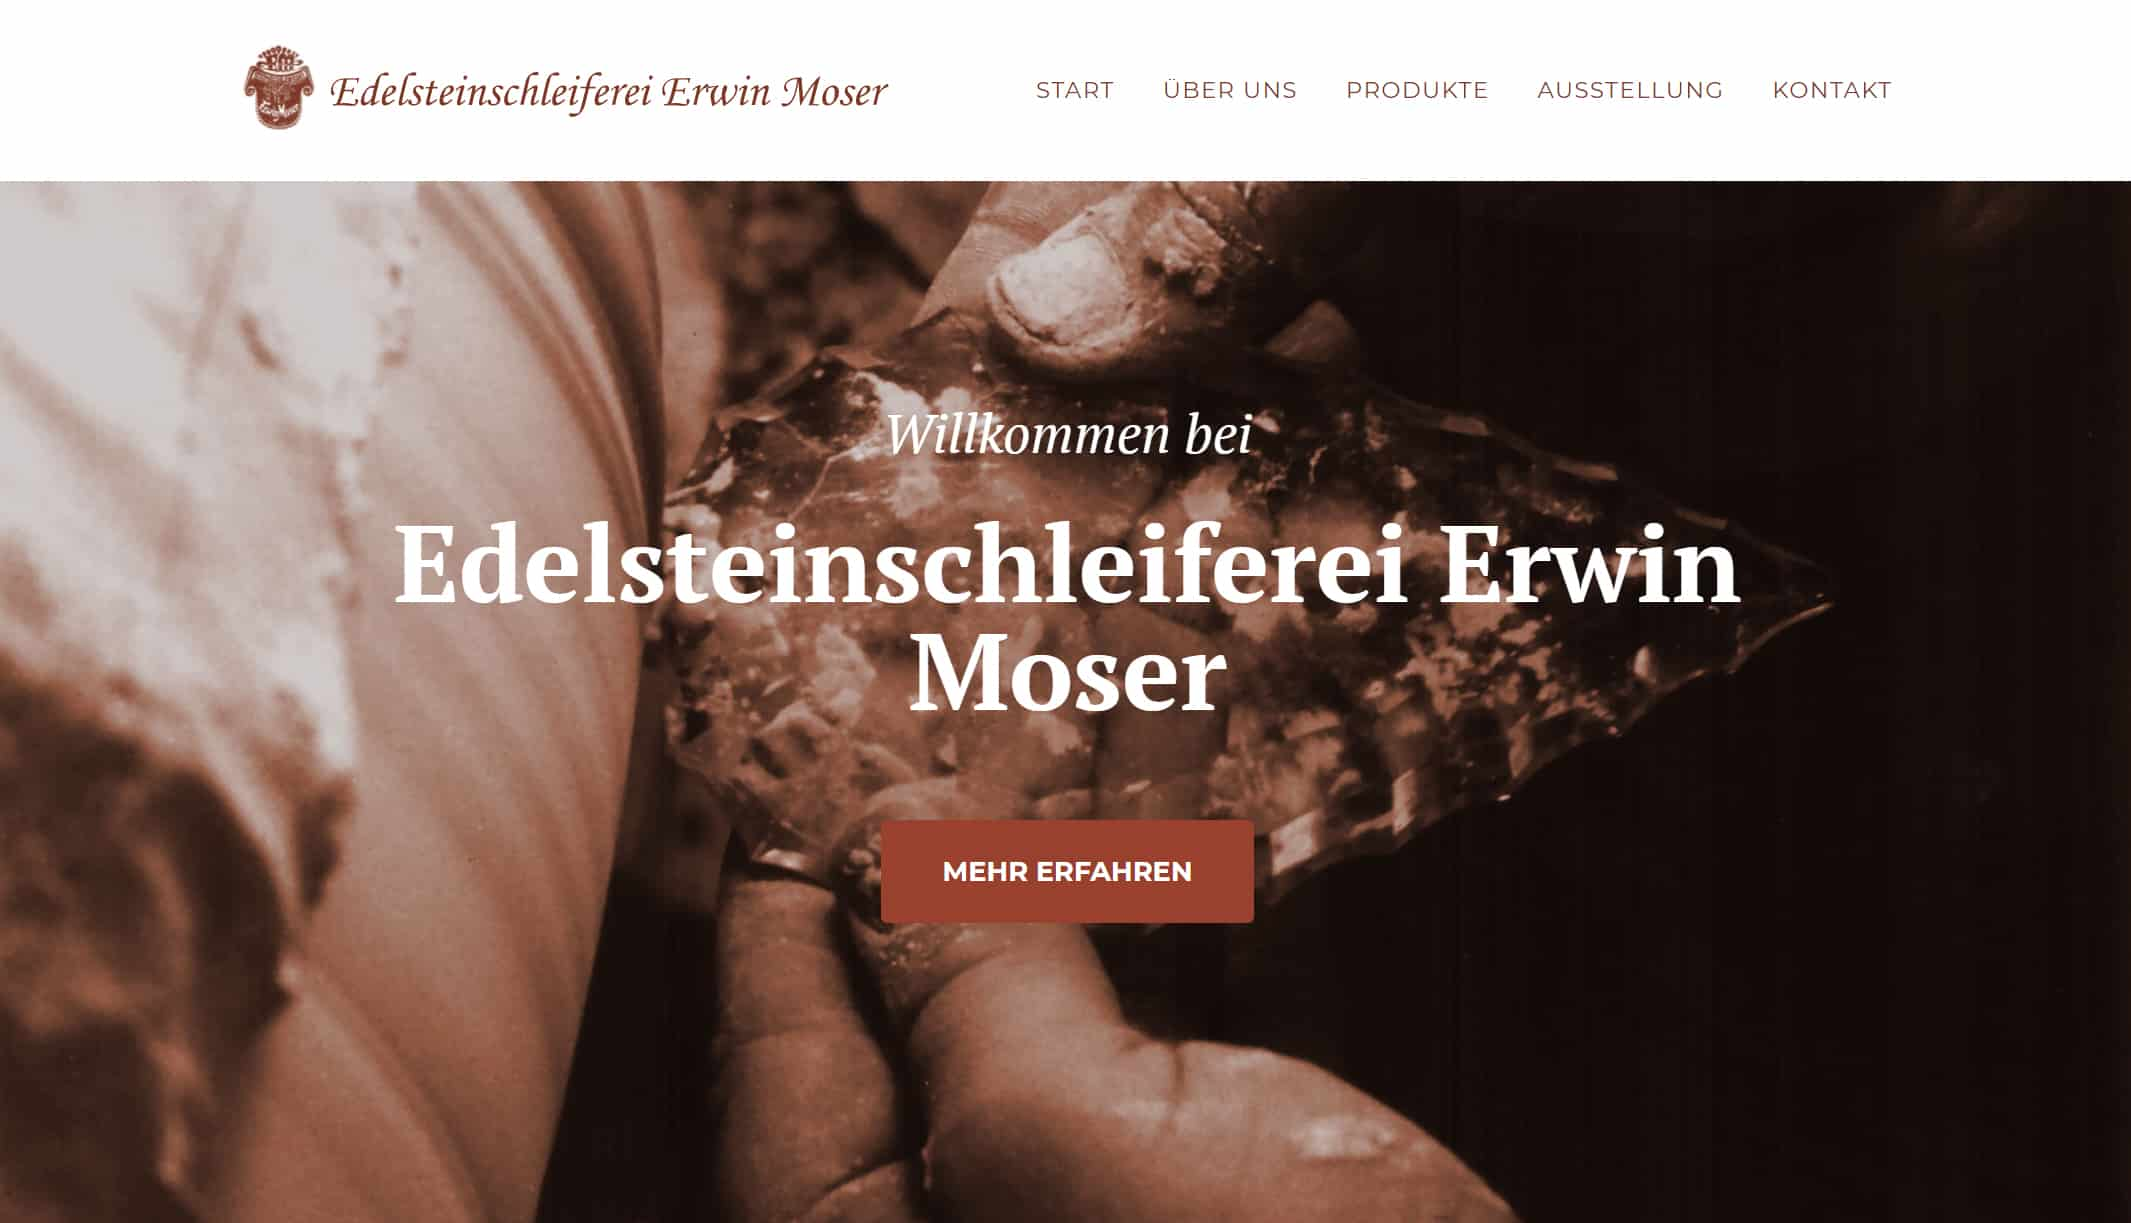 Referenz OnePage Erwin Moser